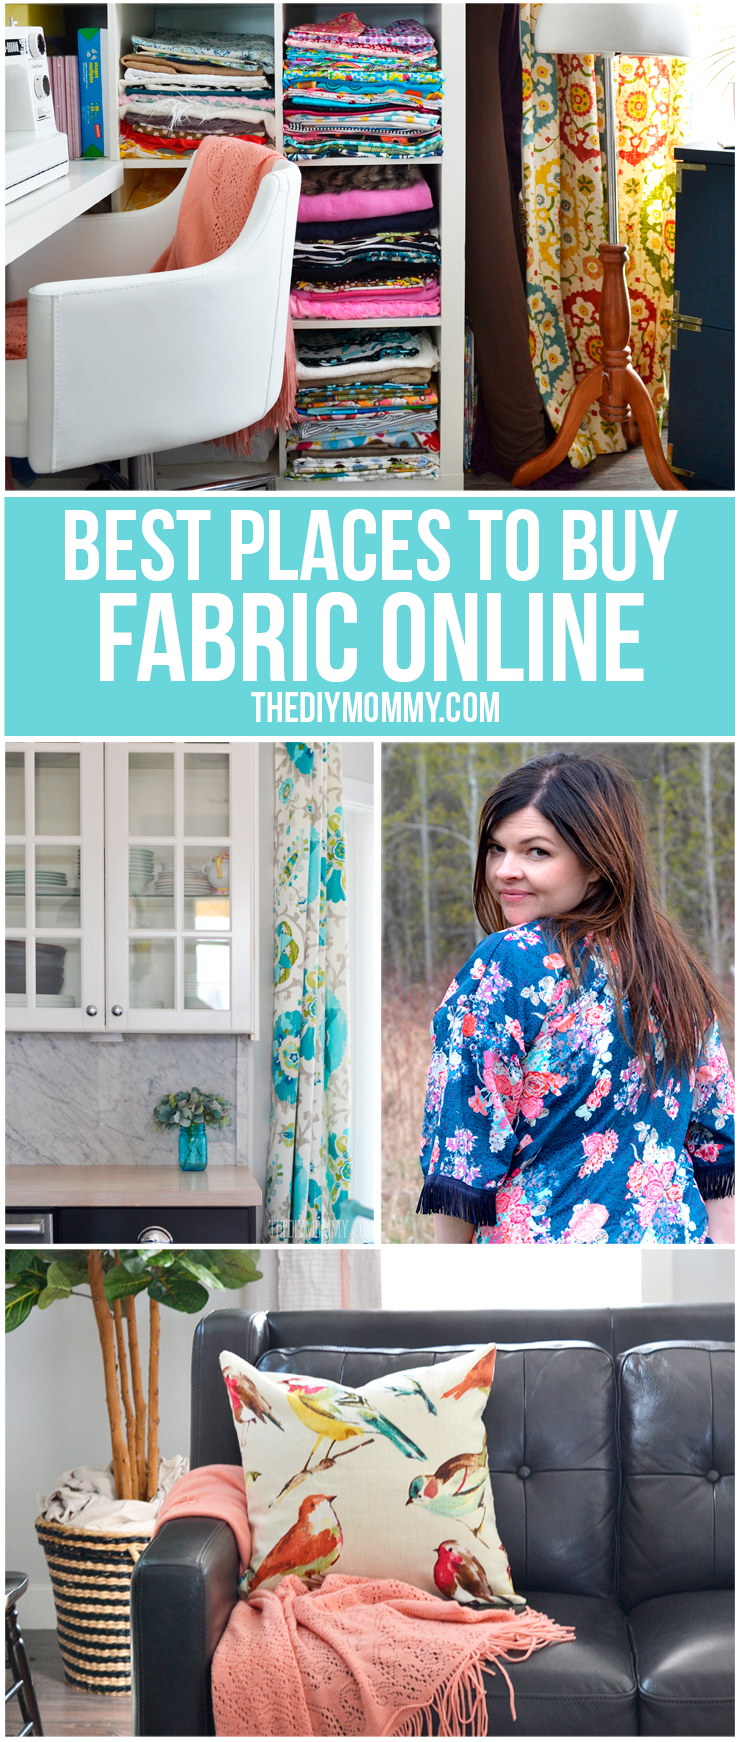 THE best places to buy fabric online from The DIY Mommy